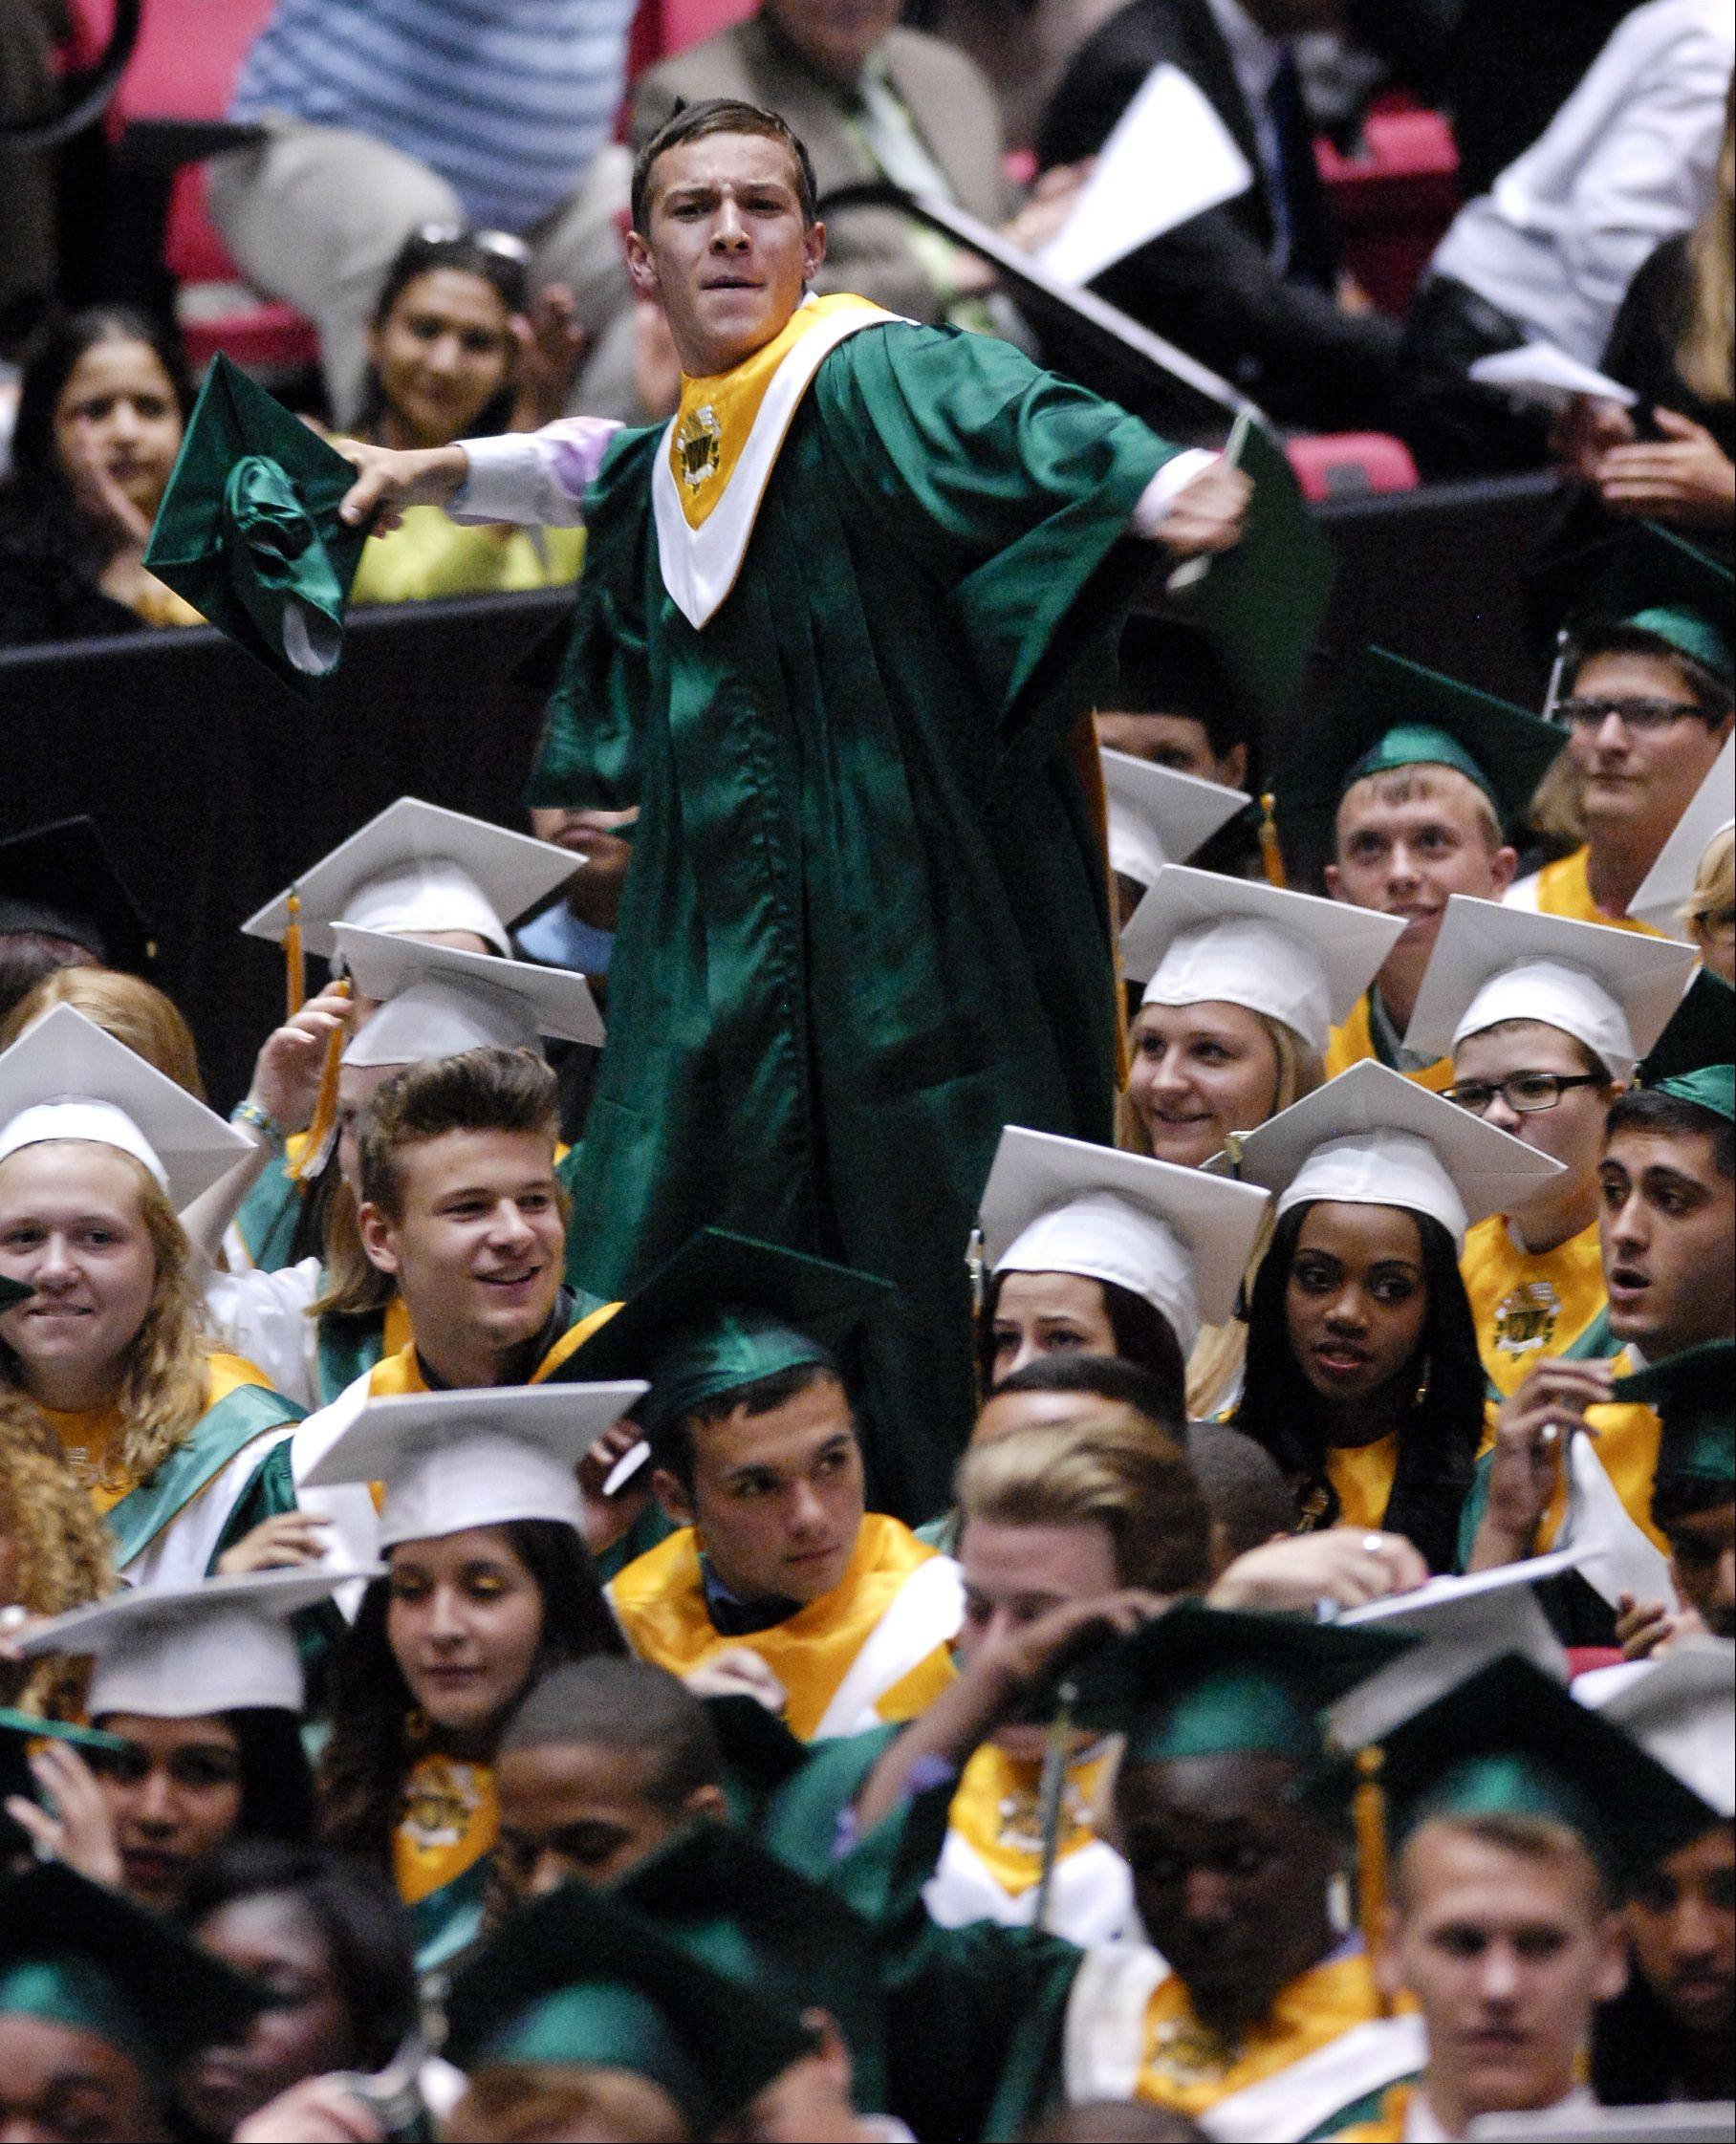 Waubonsie Valley High School graduate climbs up on his chair to toss his cap at the end of the Waubonsie Valley High School graduation on Sunday, May 26 at the NIU Convocation Center in DeKalb.